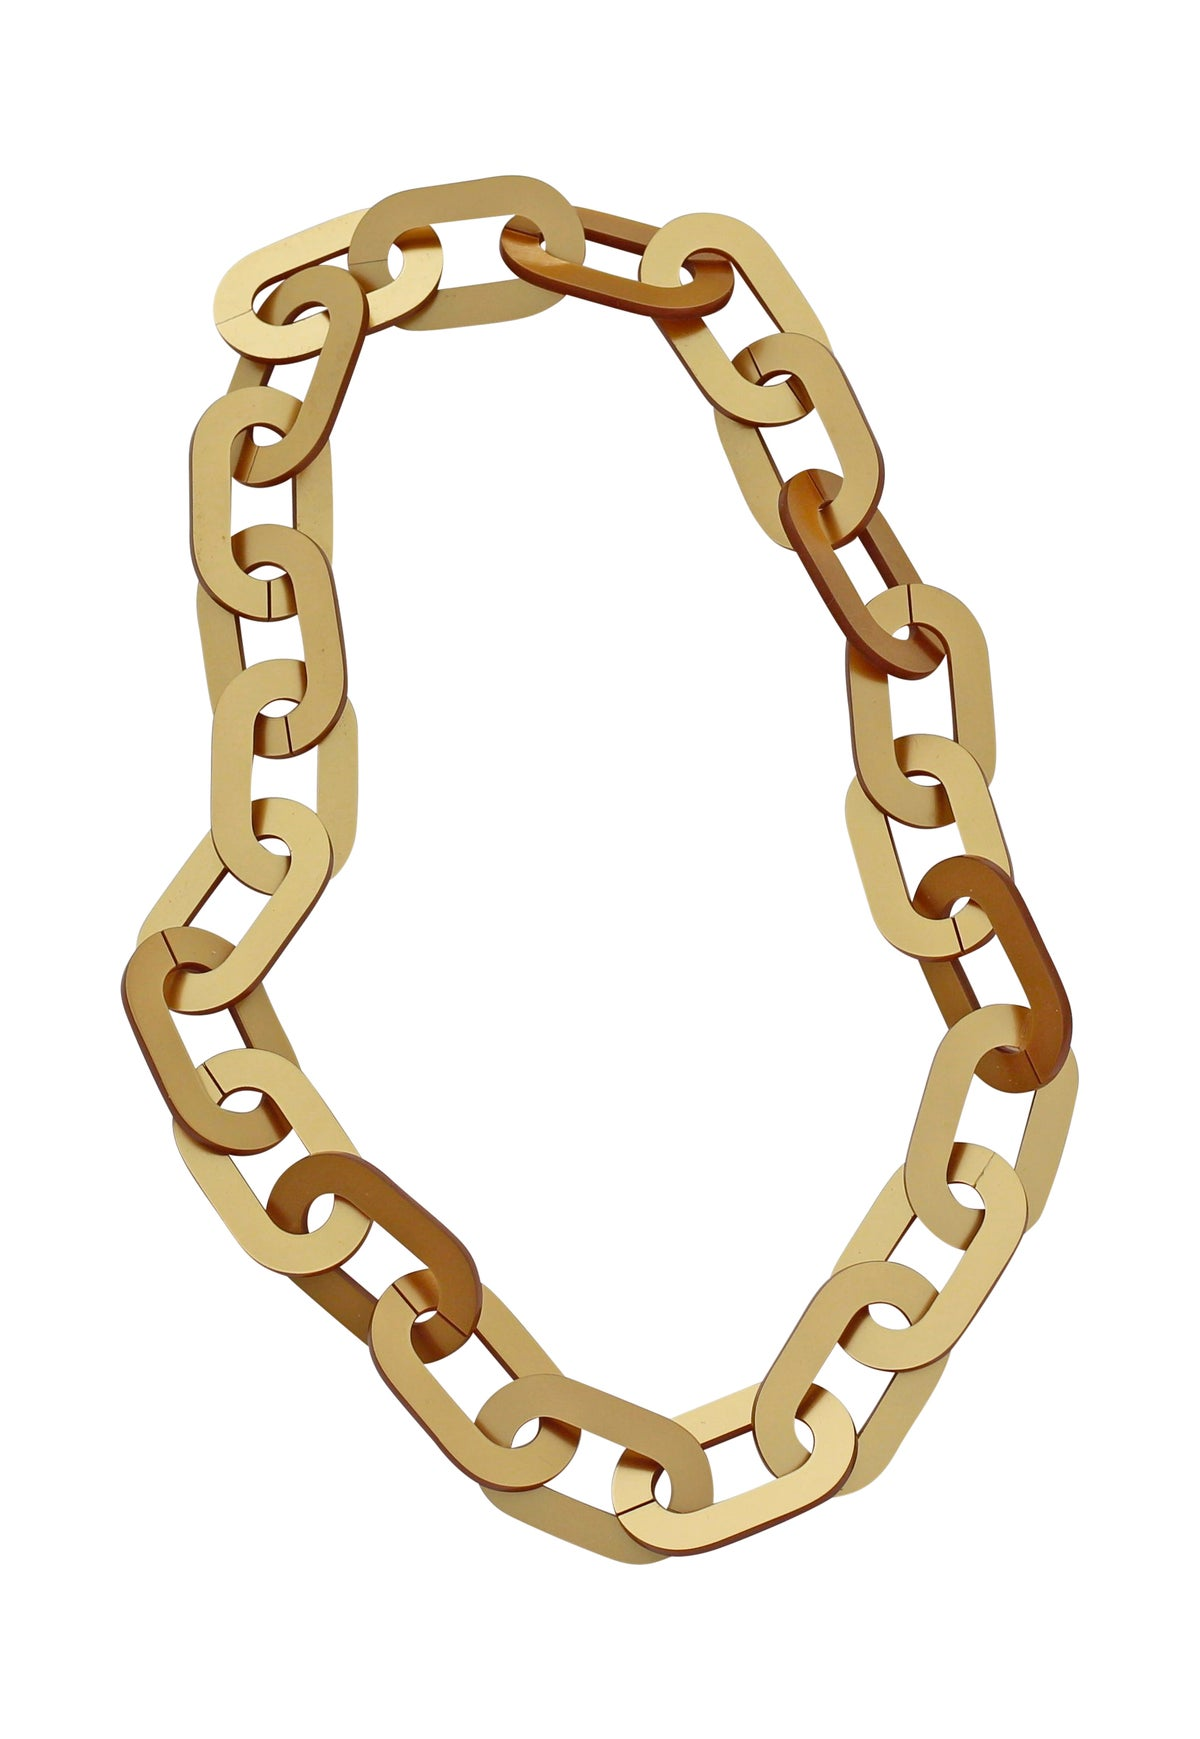 Image of Gold Chain Acrylic Necklace